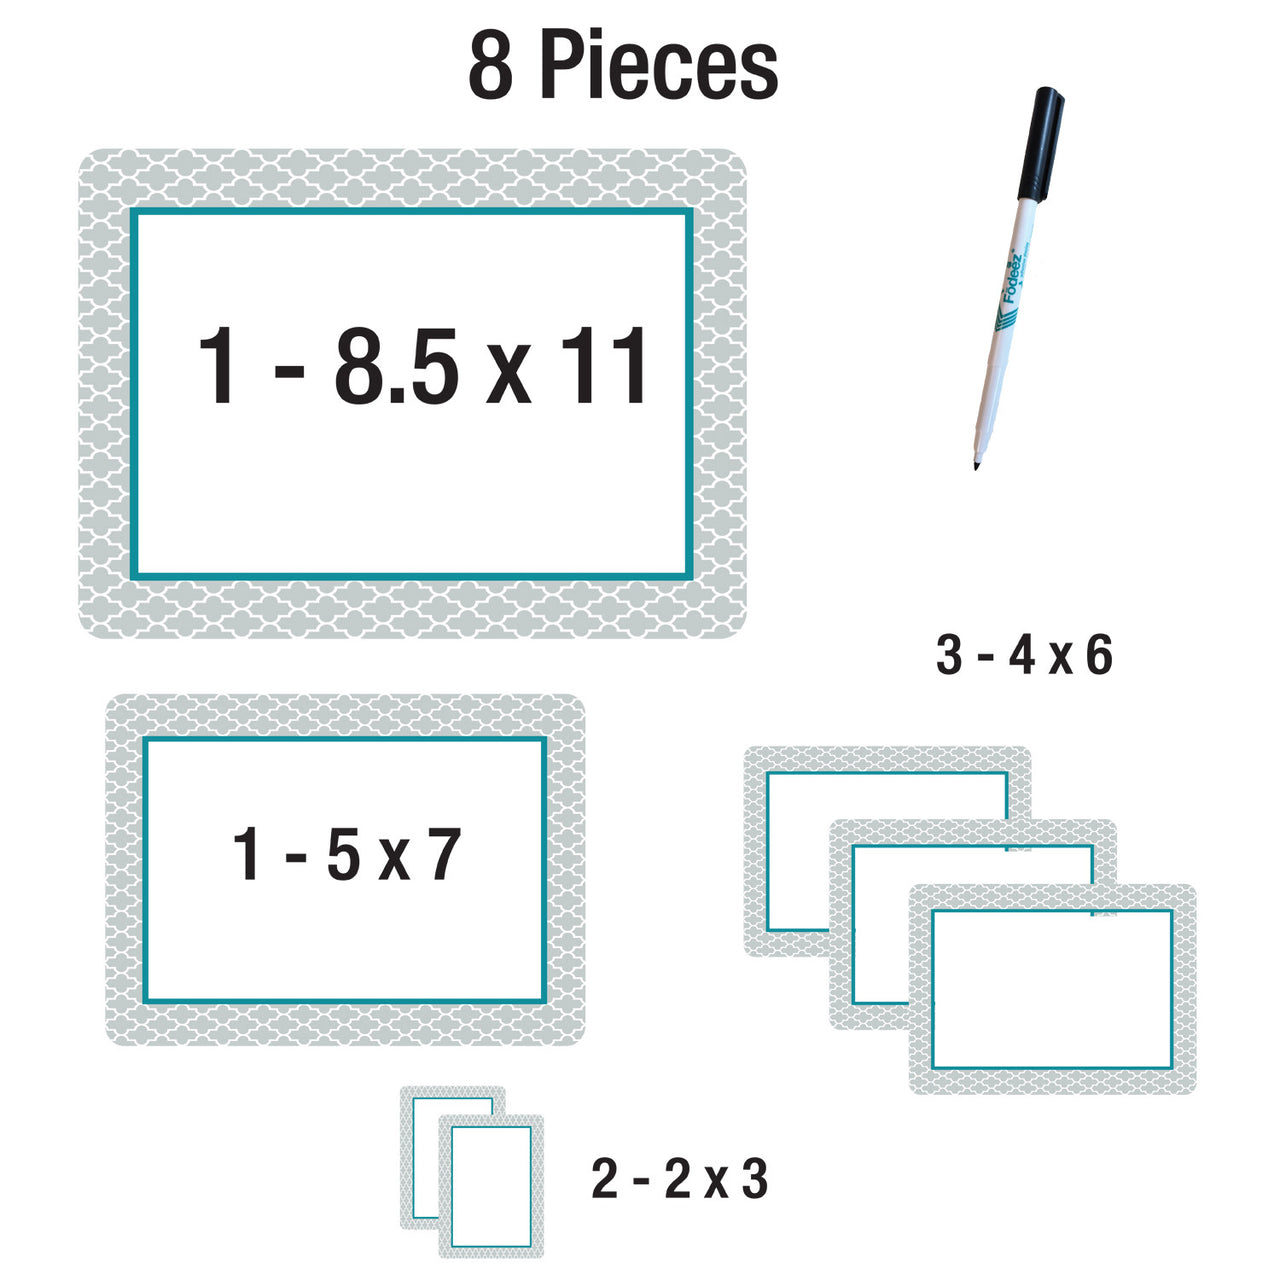 Dry Erase Adhesive Scheduler Multi-Pack - Shabby Chic - Fodeez® Adhesive Display Frames / Dry Erase Boards  - 6